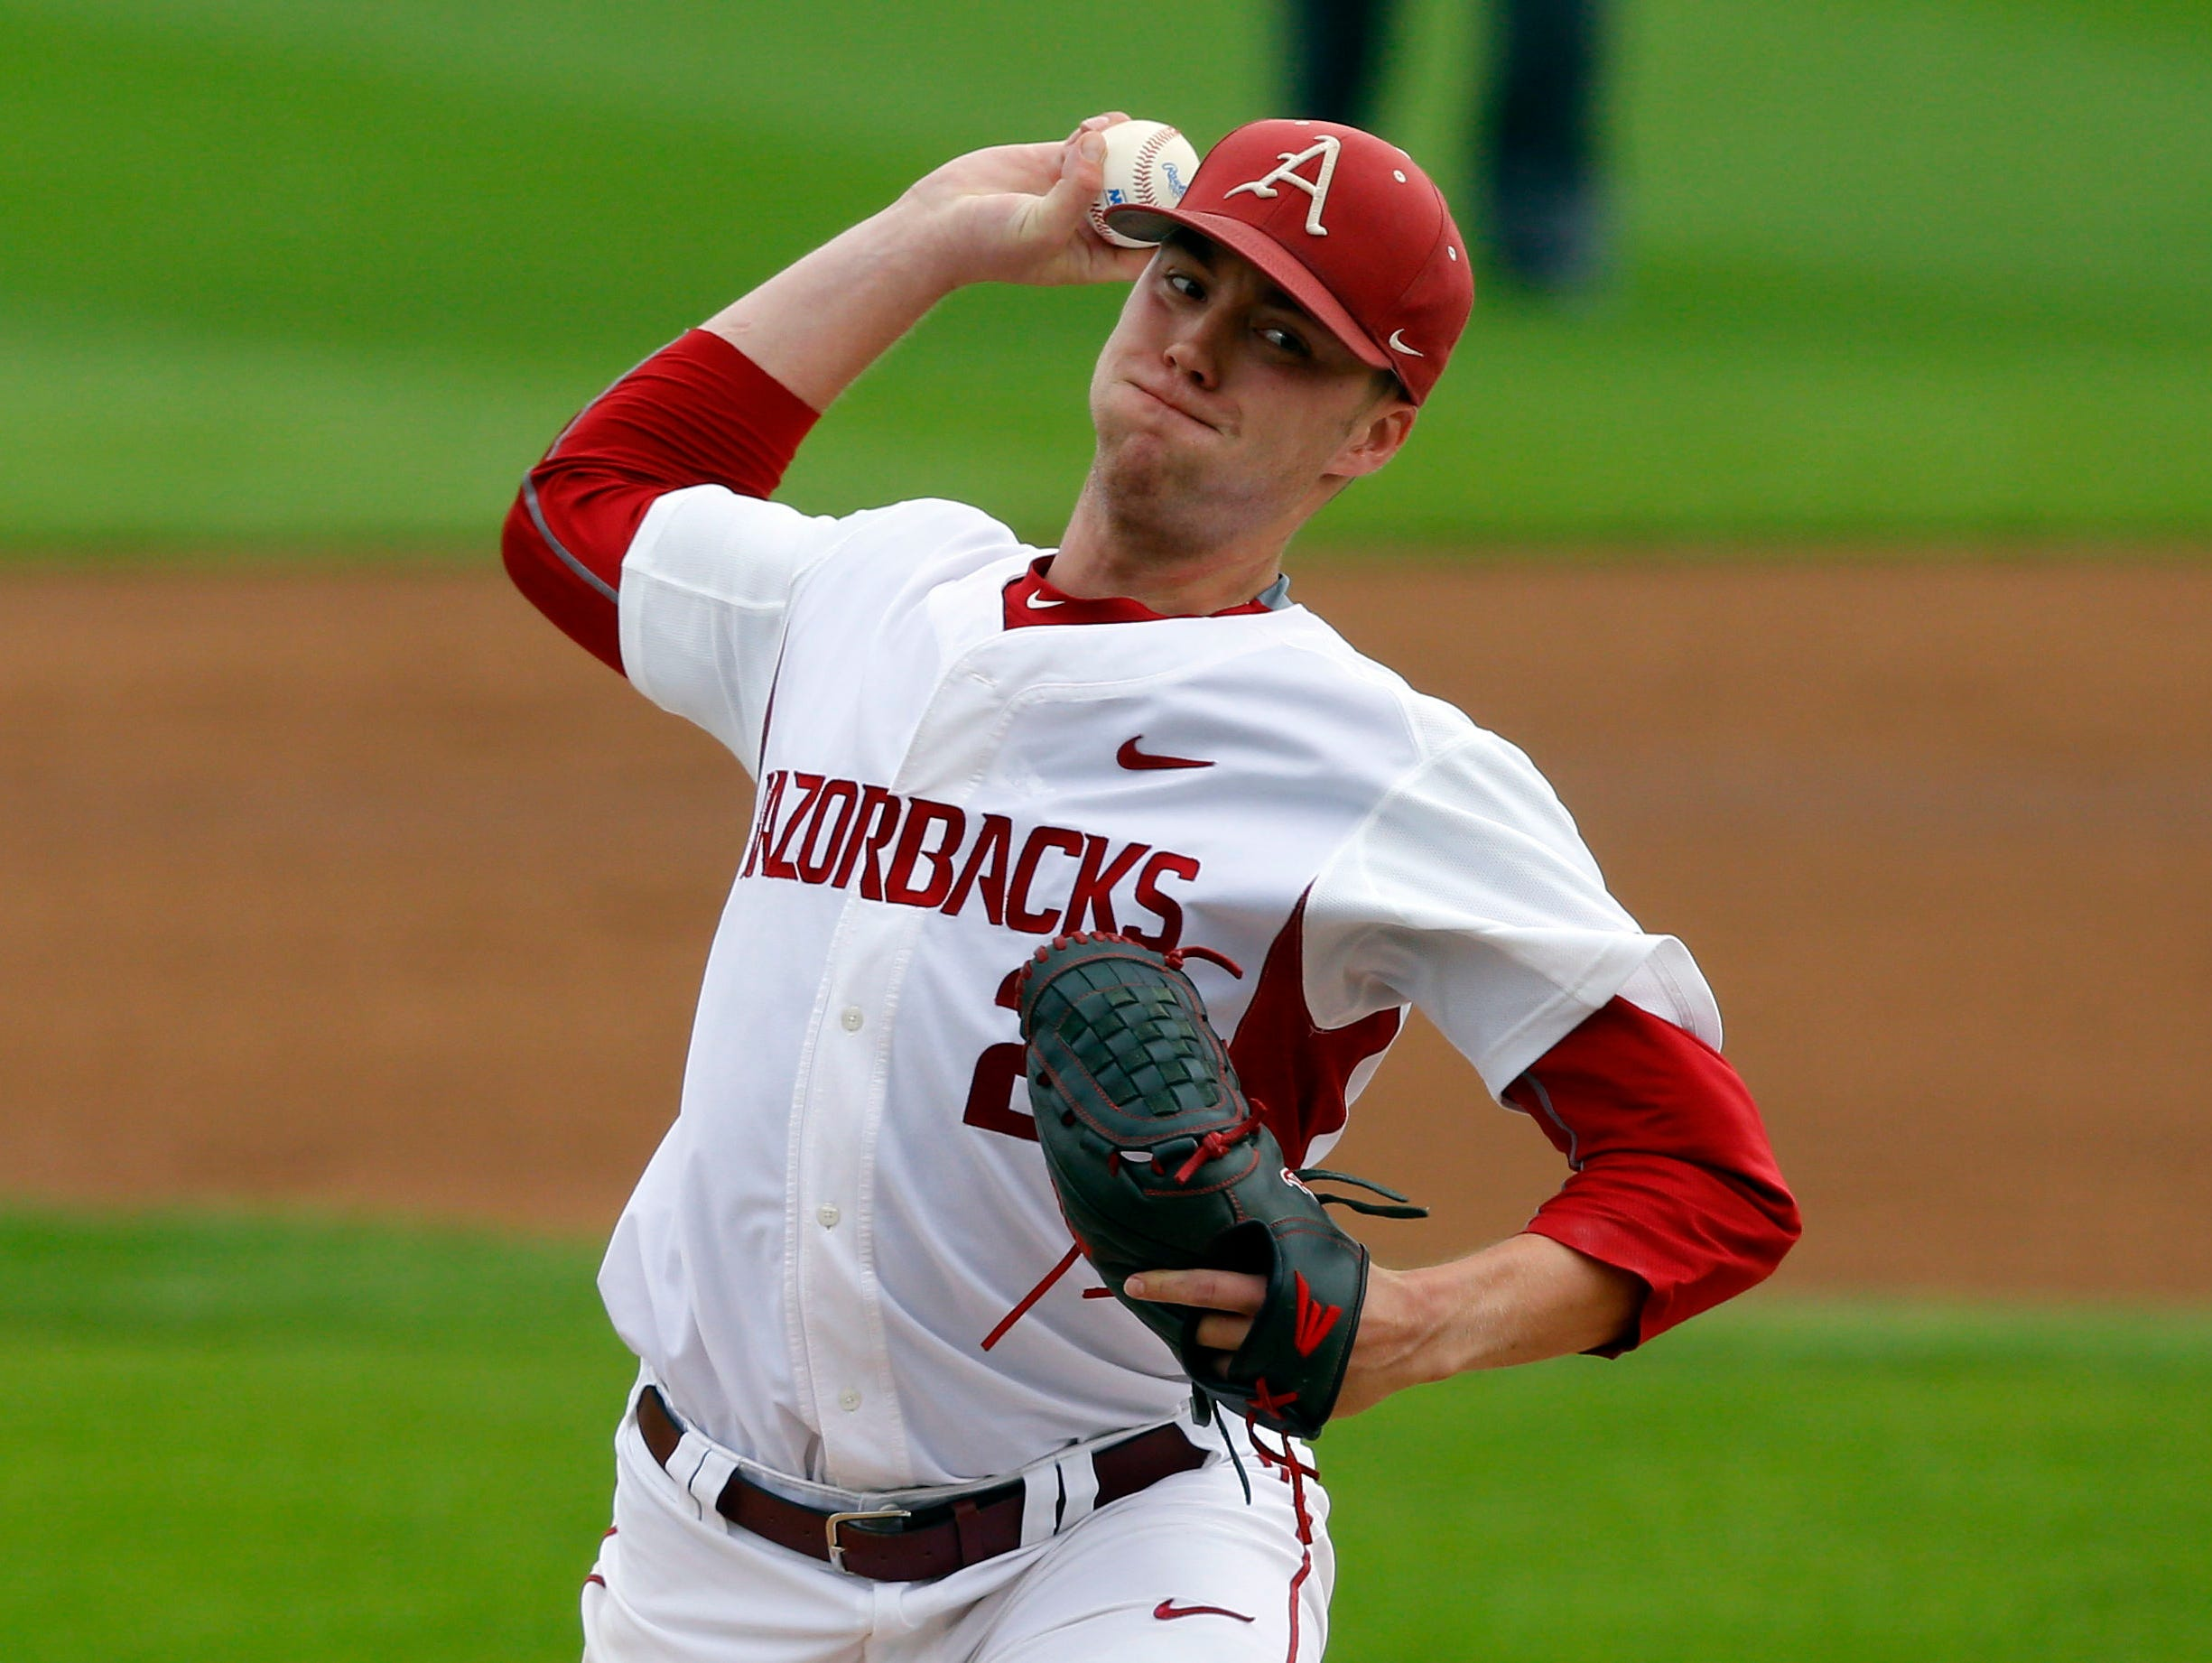 Mountain Home High grad Trey Killian got the start for Arkansas, but didn't figure in the decision after giving up eight hits with three runs (all earned) and five strikeouts over five innings. The Hogs rallied past Oral Roberts, 8-6, to win their opening game at the Stillwater Regional on Friday.